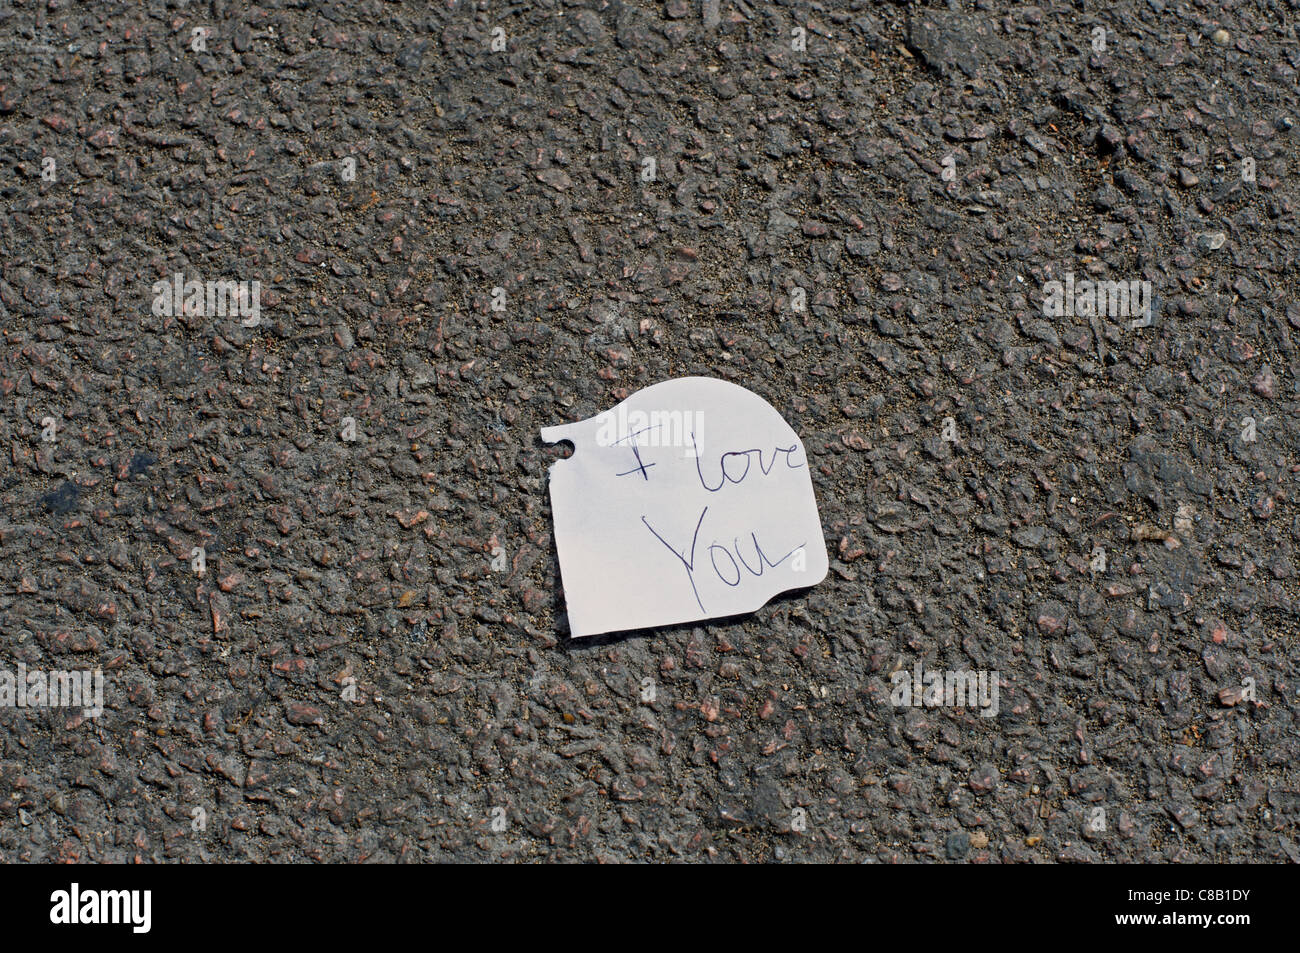 A small piece of paper with the words 'I love you' left on a railway